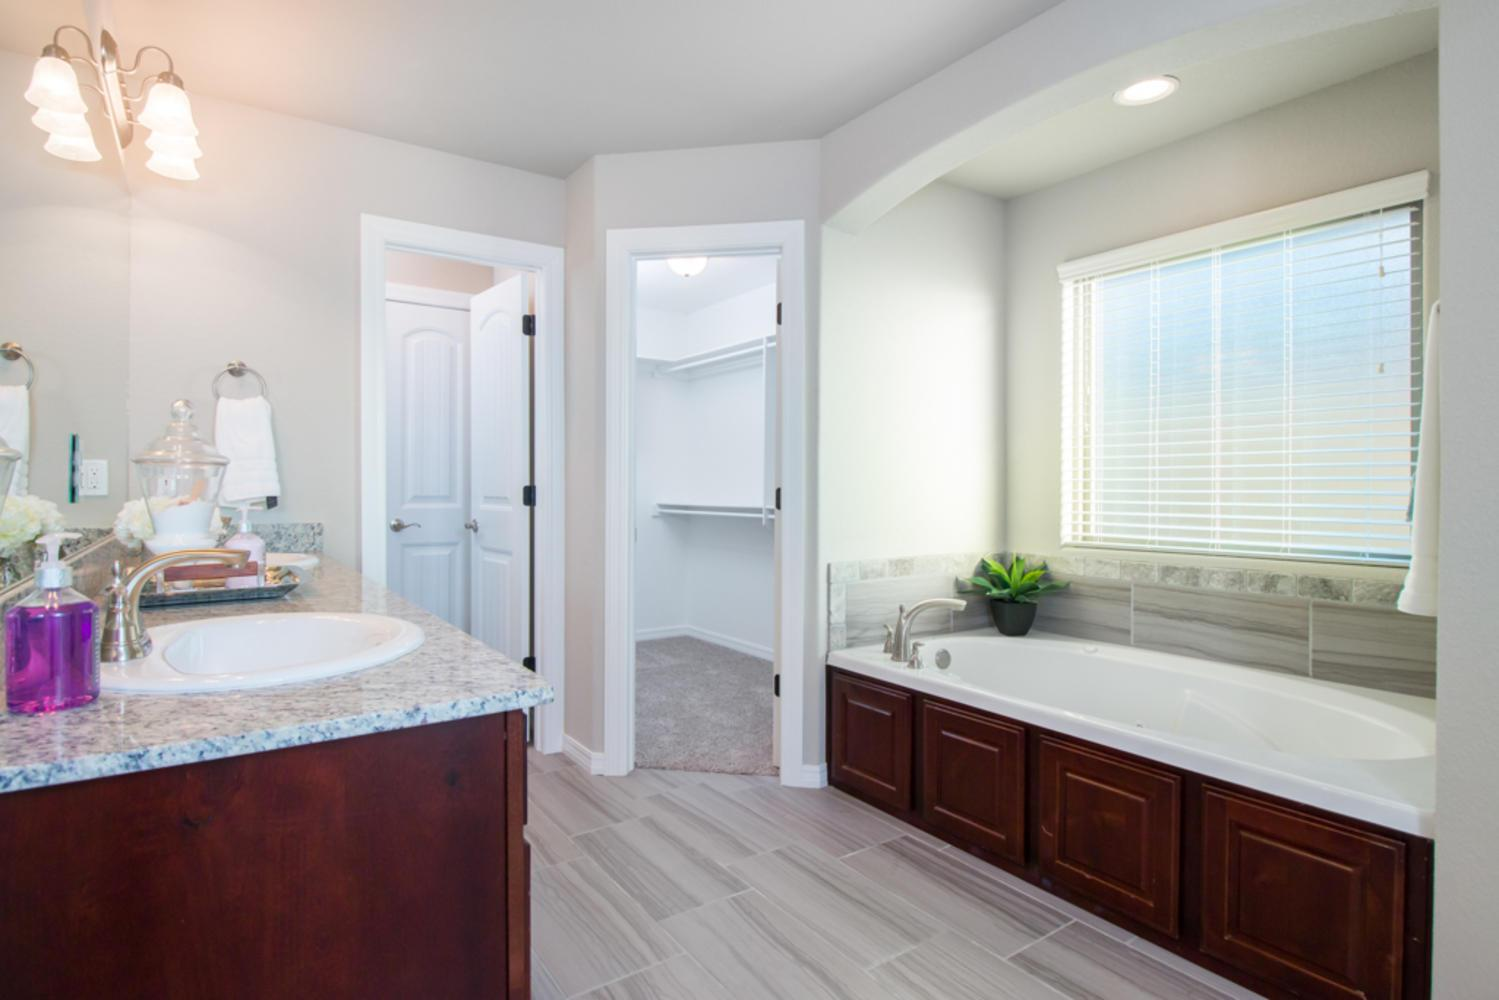 Bathroom featured in the 1862 By Riverwood Homes - Arkansas in Fayetteville, AR